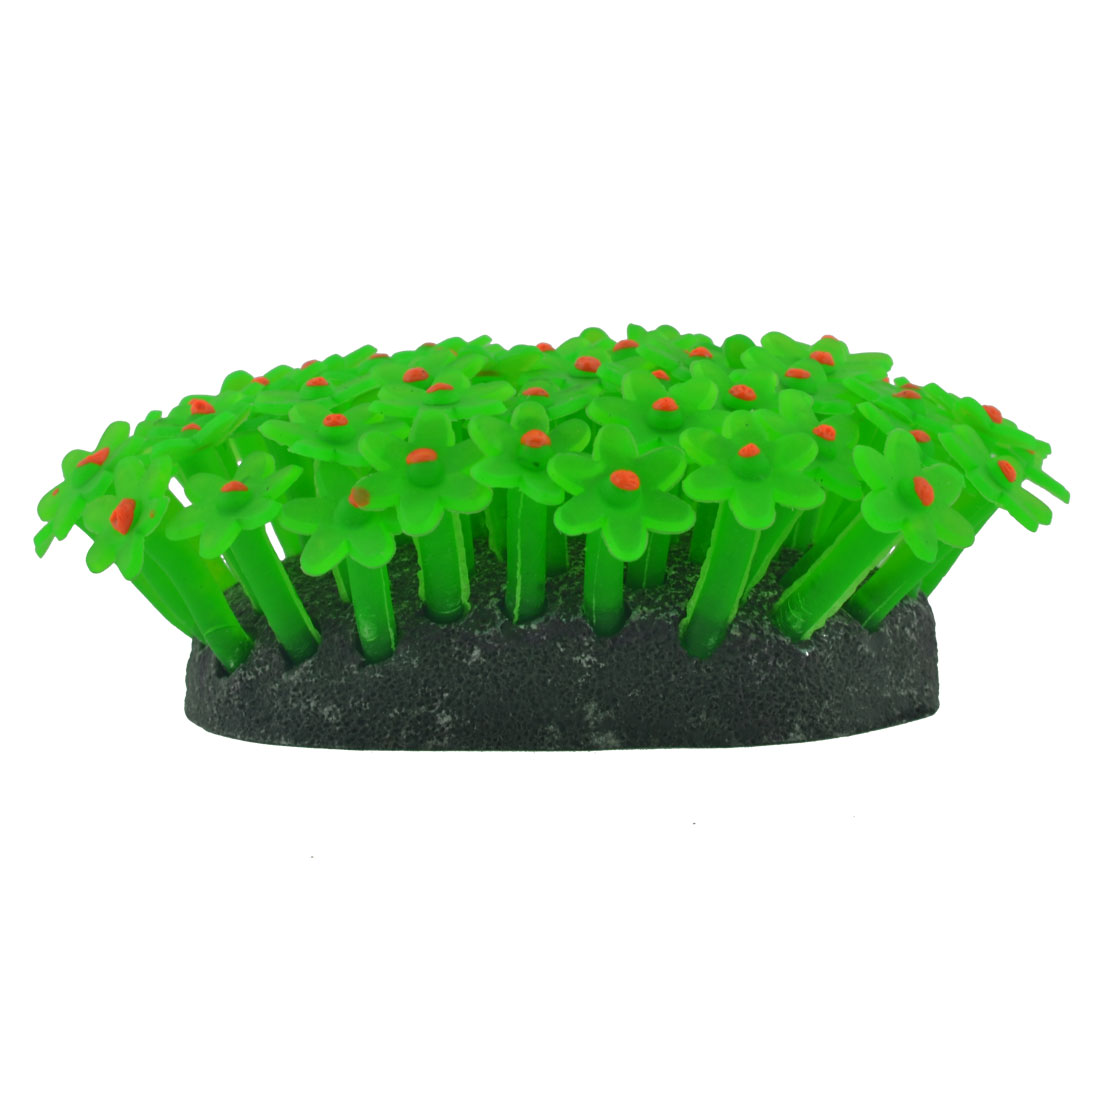 Fish Tank Aquarium Fishbowl Silicone Emulational Coral Grass Plant Decor Ornament Green